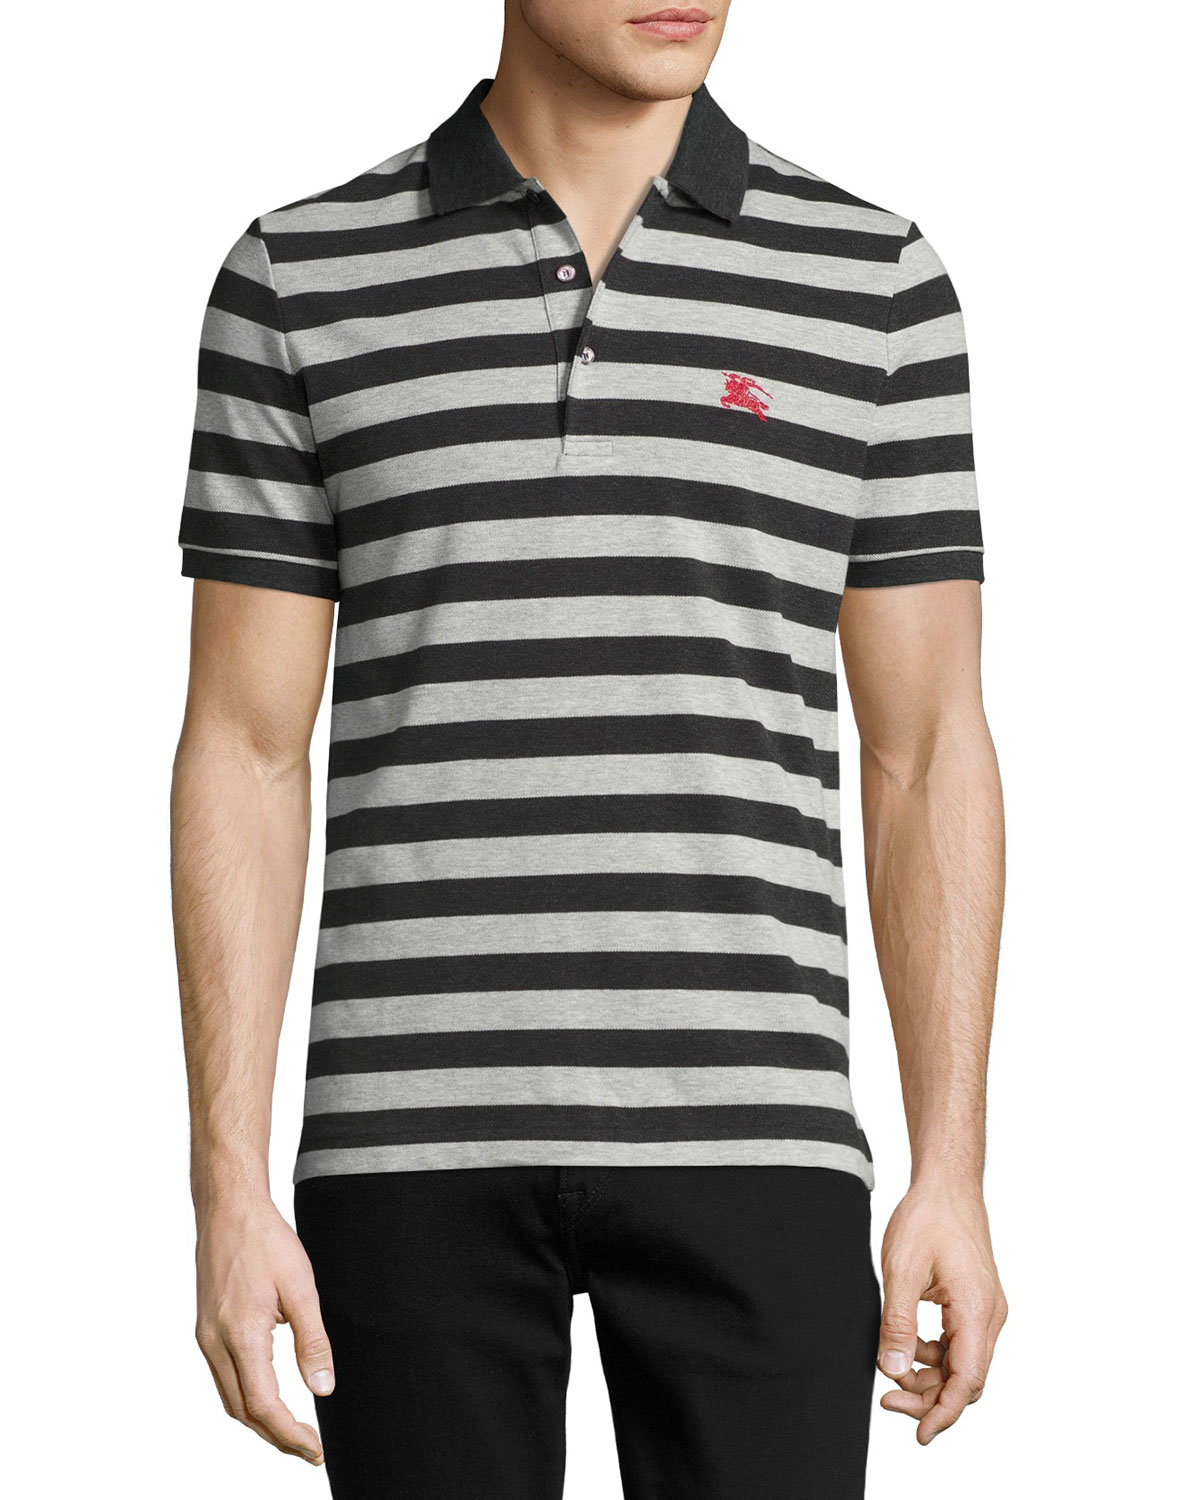 Striped Polo Shirt, Dark Charcoal/Pale Gray